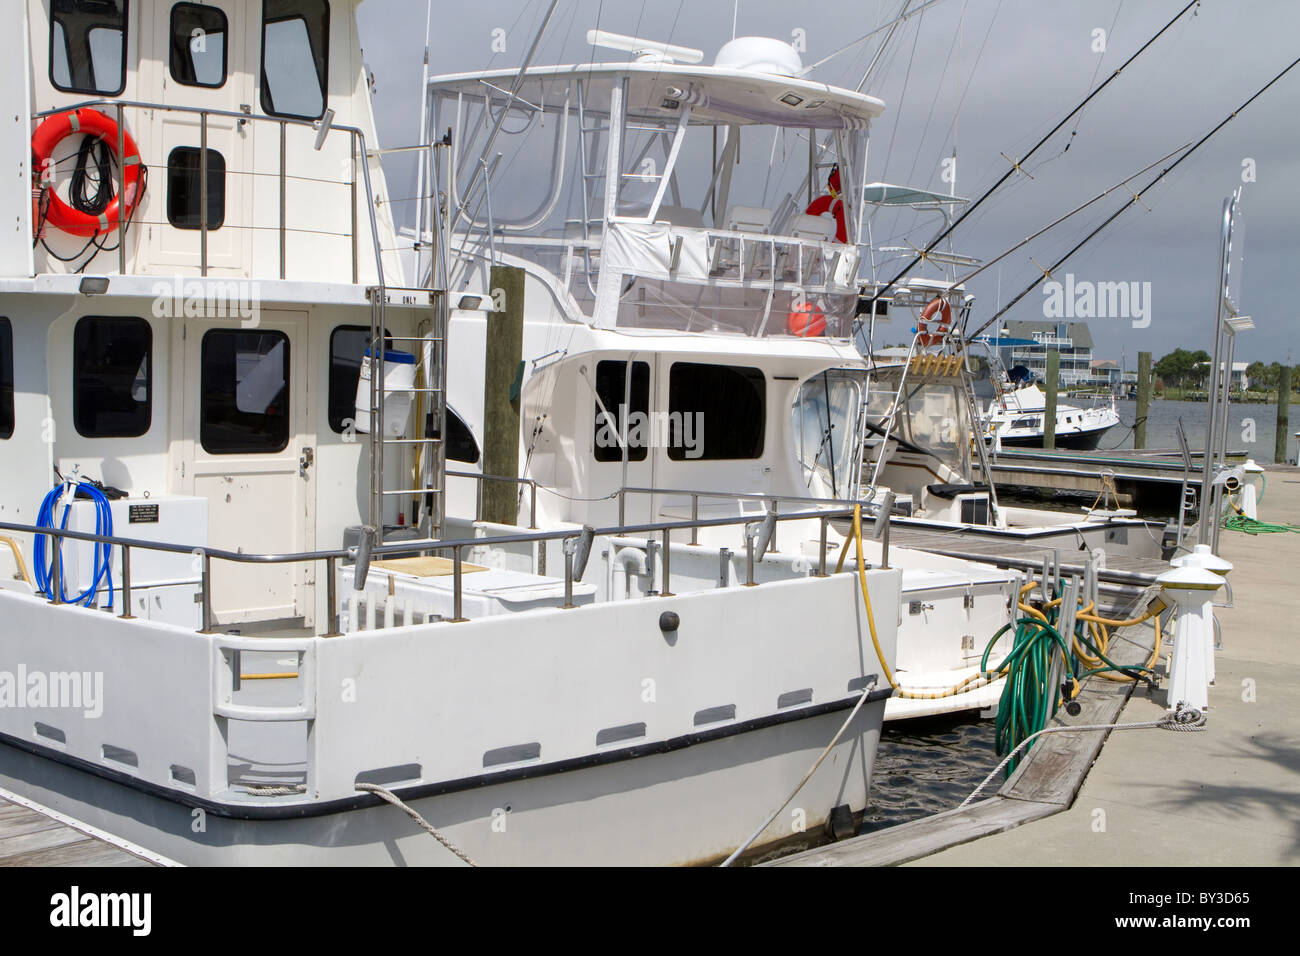 Charter fishing boats sit idle at the dock. - Stock Image